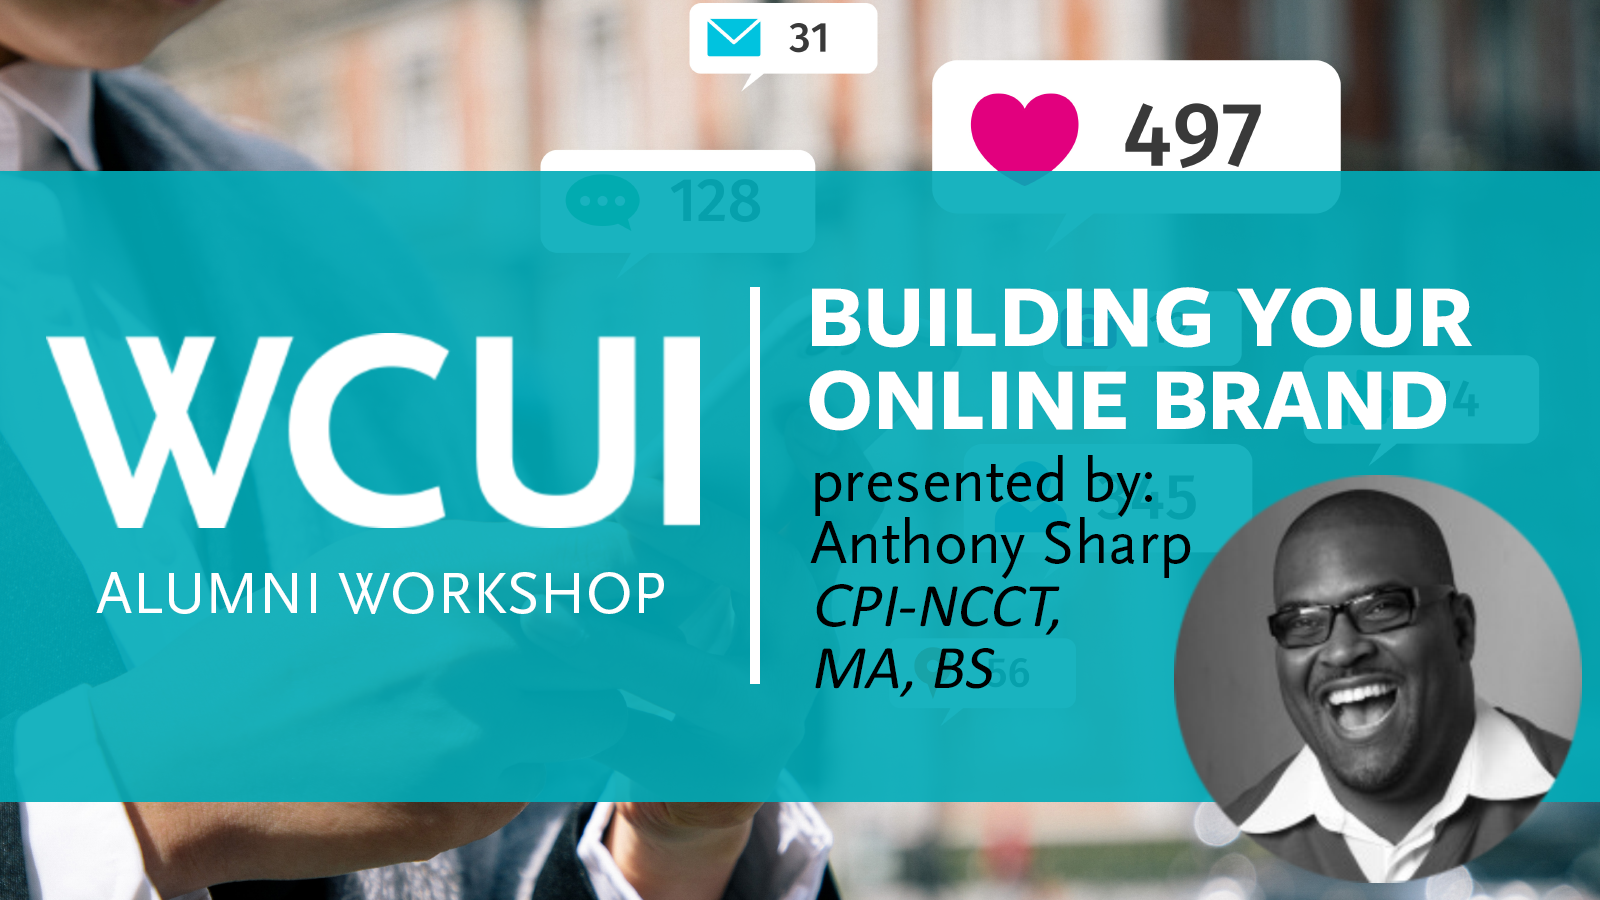 Alumni Workshop - Building Your Online Brand